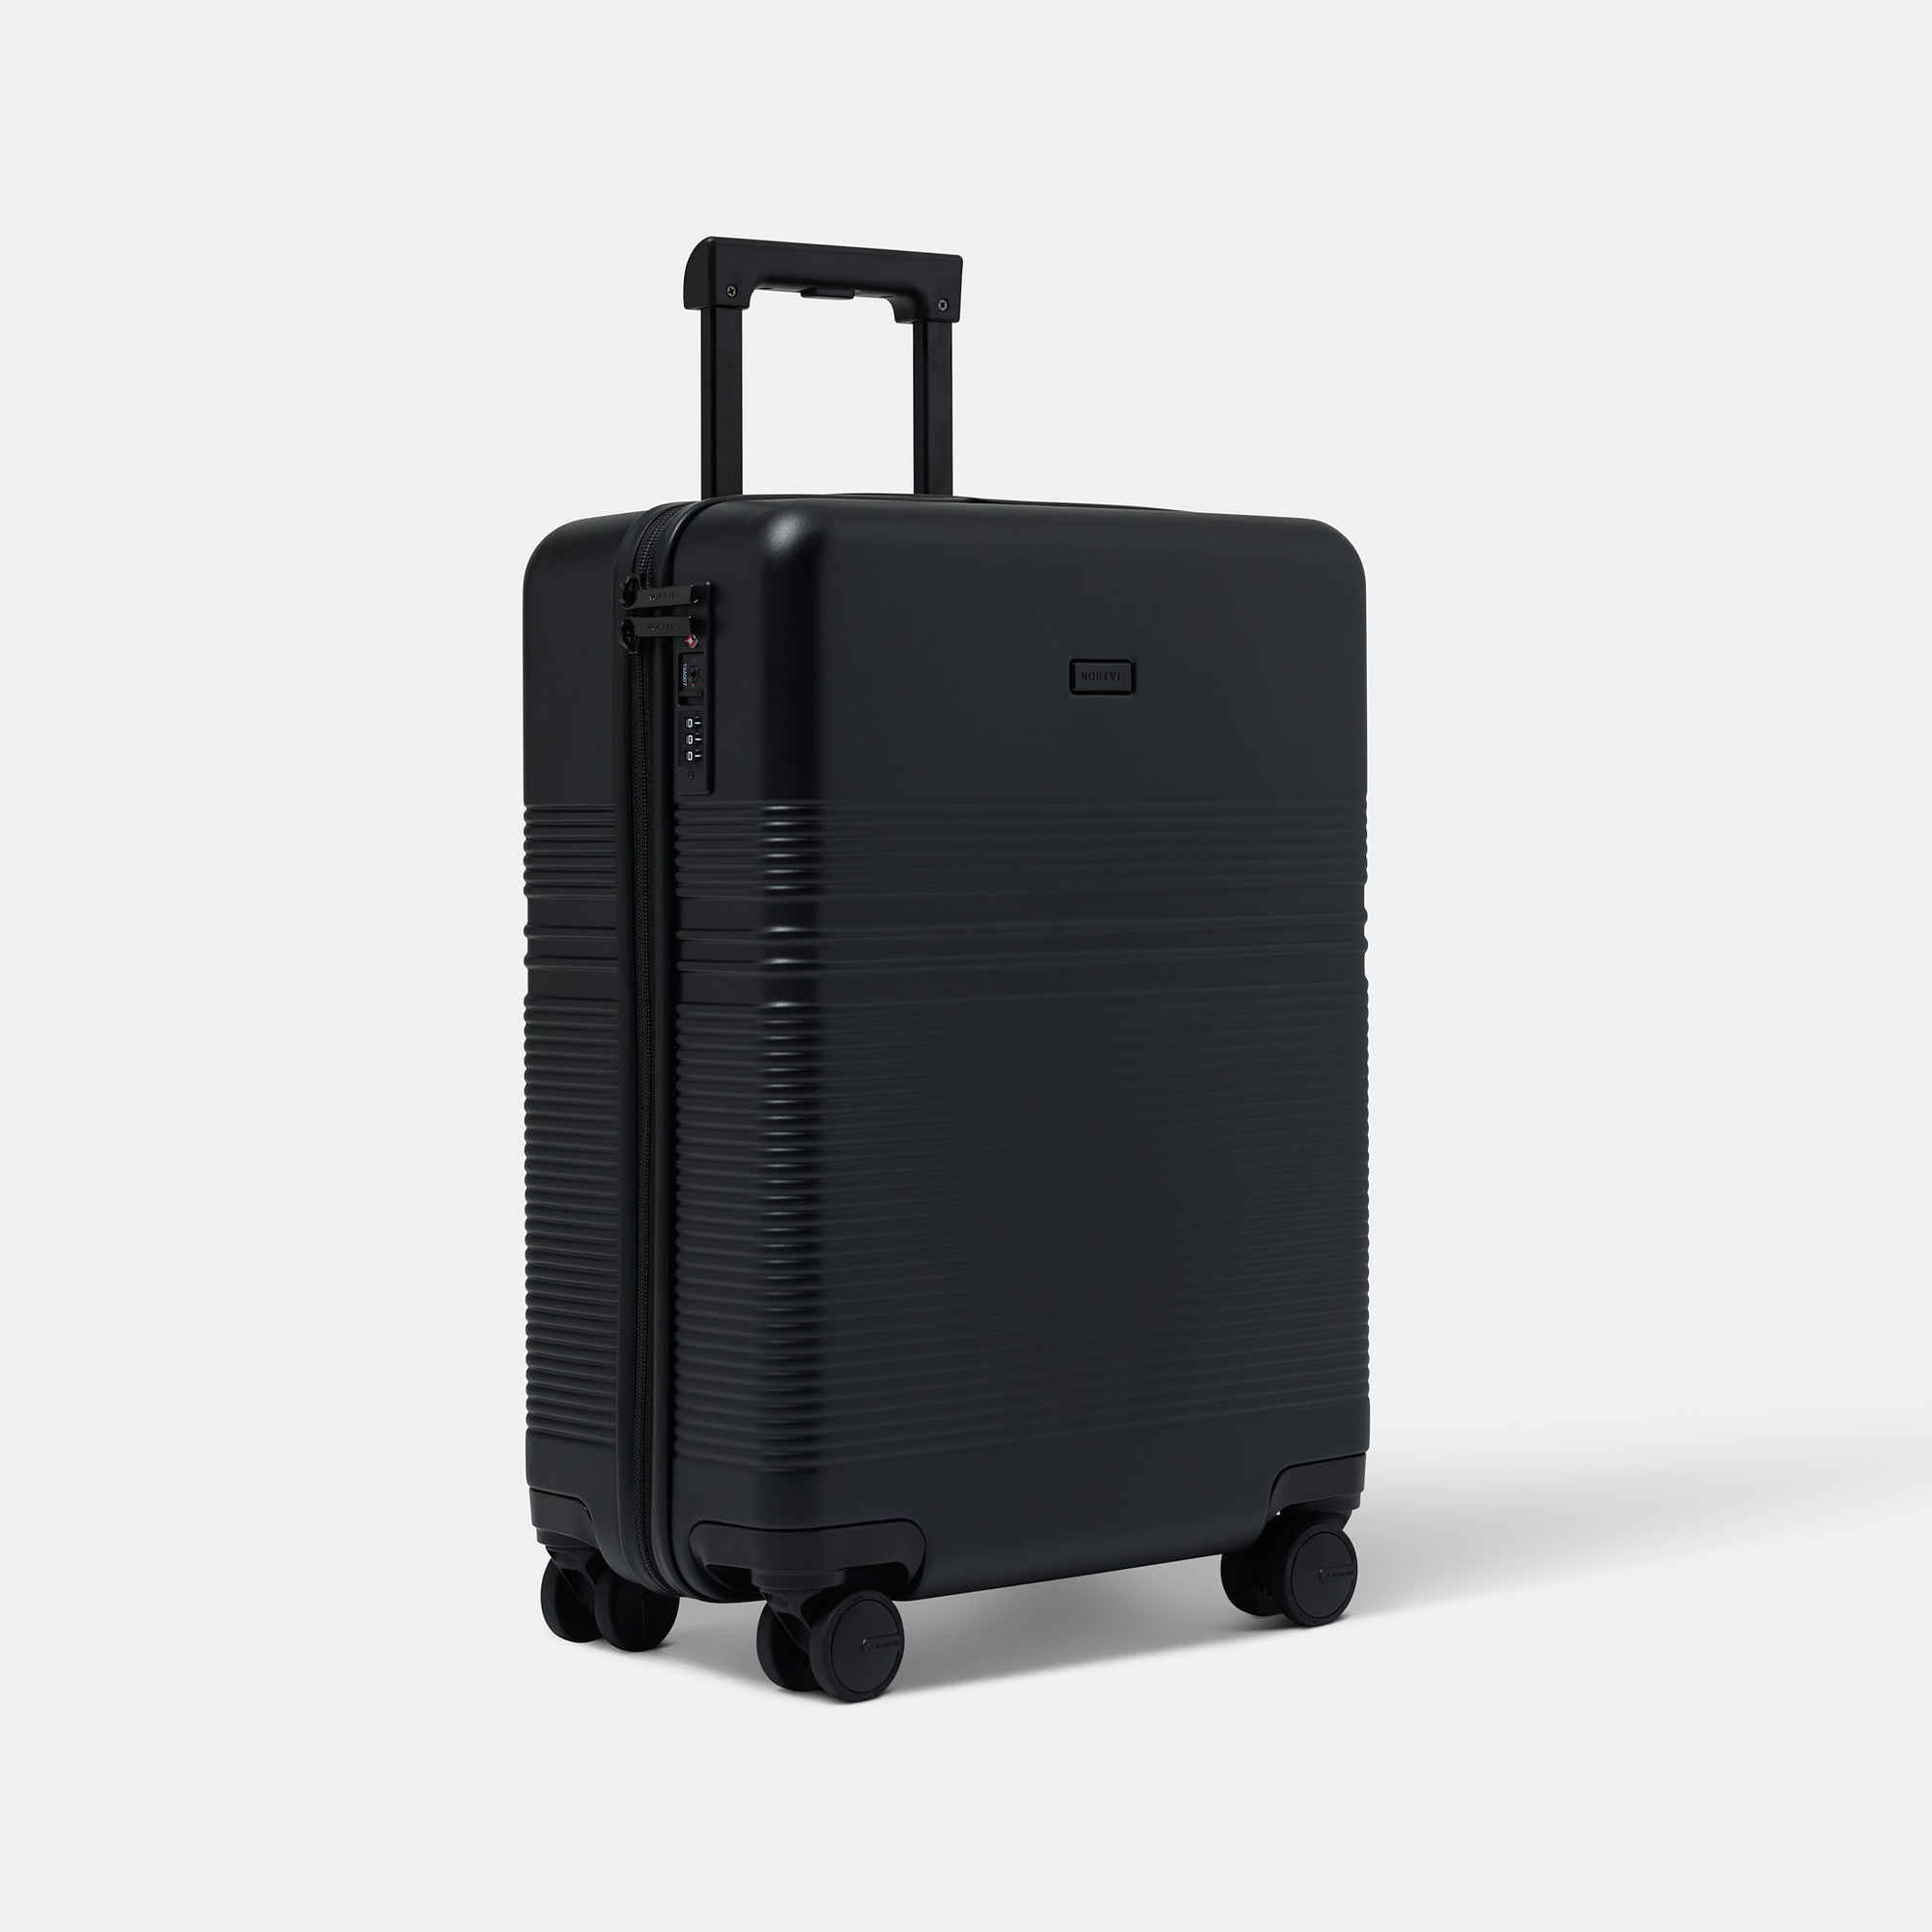 NORTVI sustainable design suitcase black made of durable material.